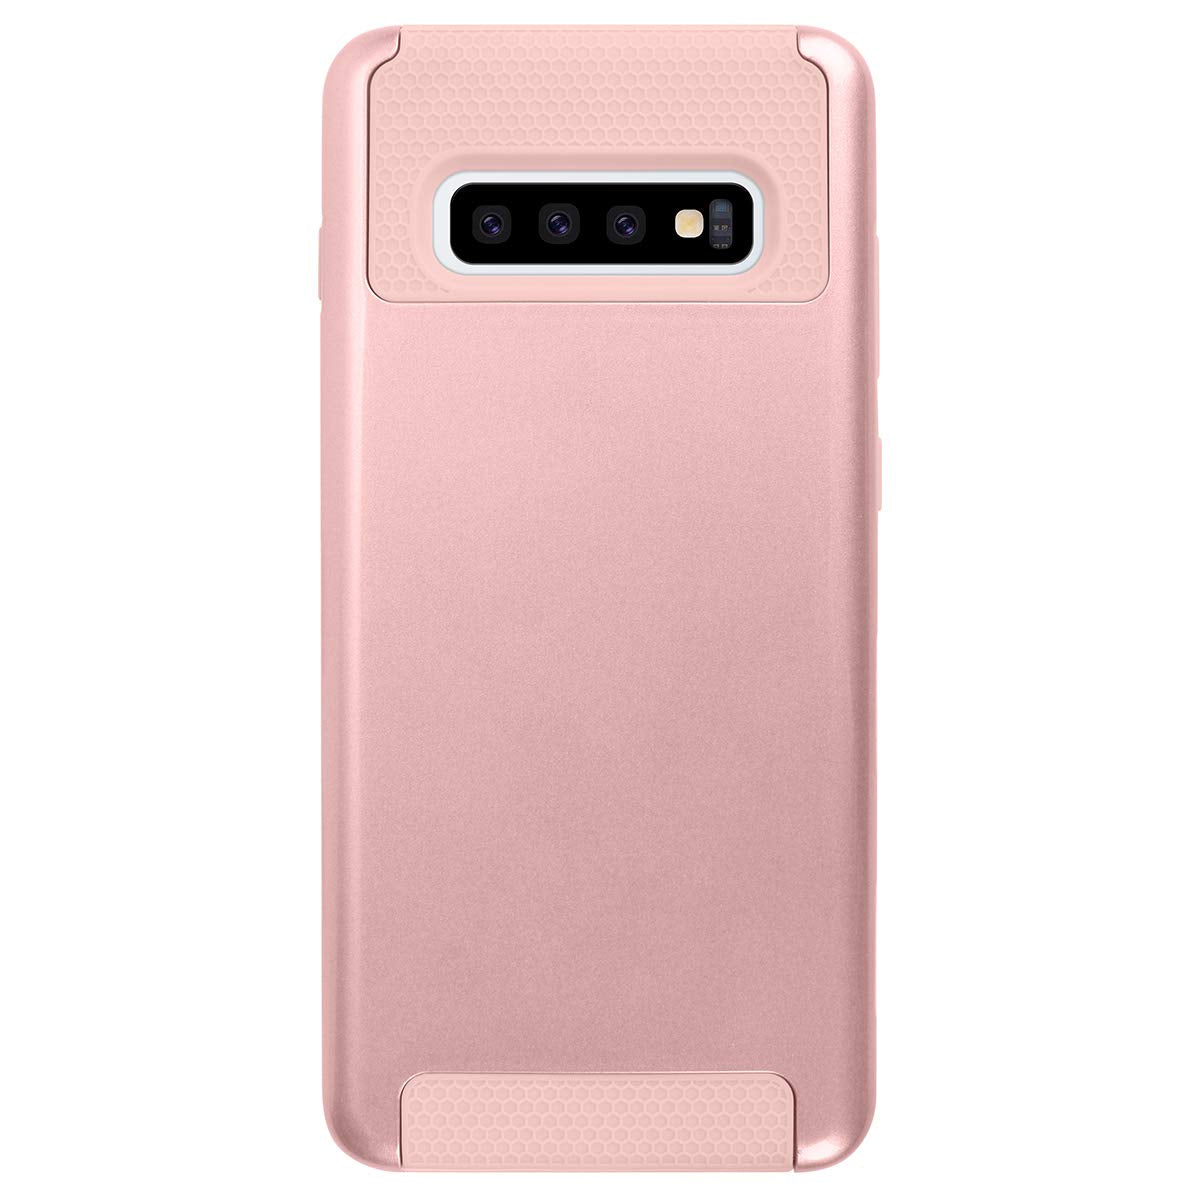 Galaxy S10/S10+ 2 in 1 Anti-Scratch Dual Layer Heavy Duty Tough Armor Hard Plastic Shell Soft Rugged TPU Bumper Shockproof Protective Case